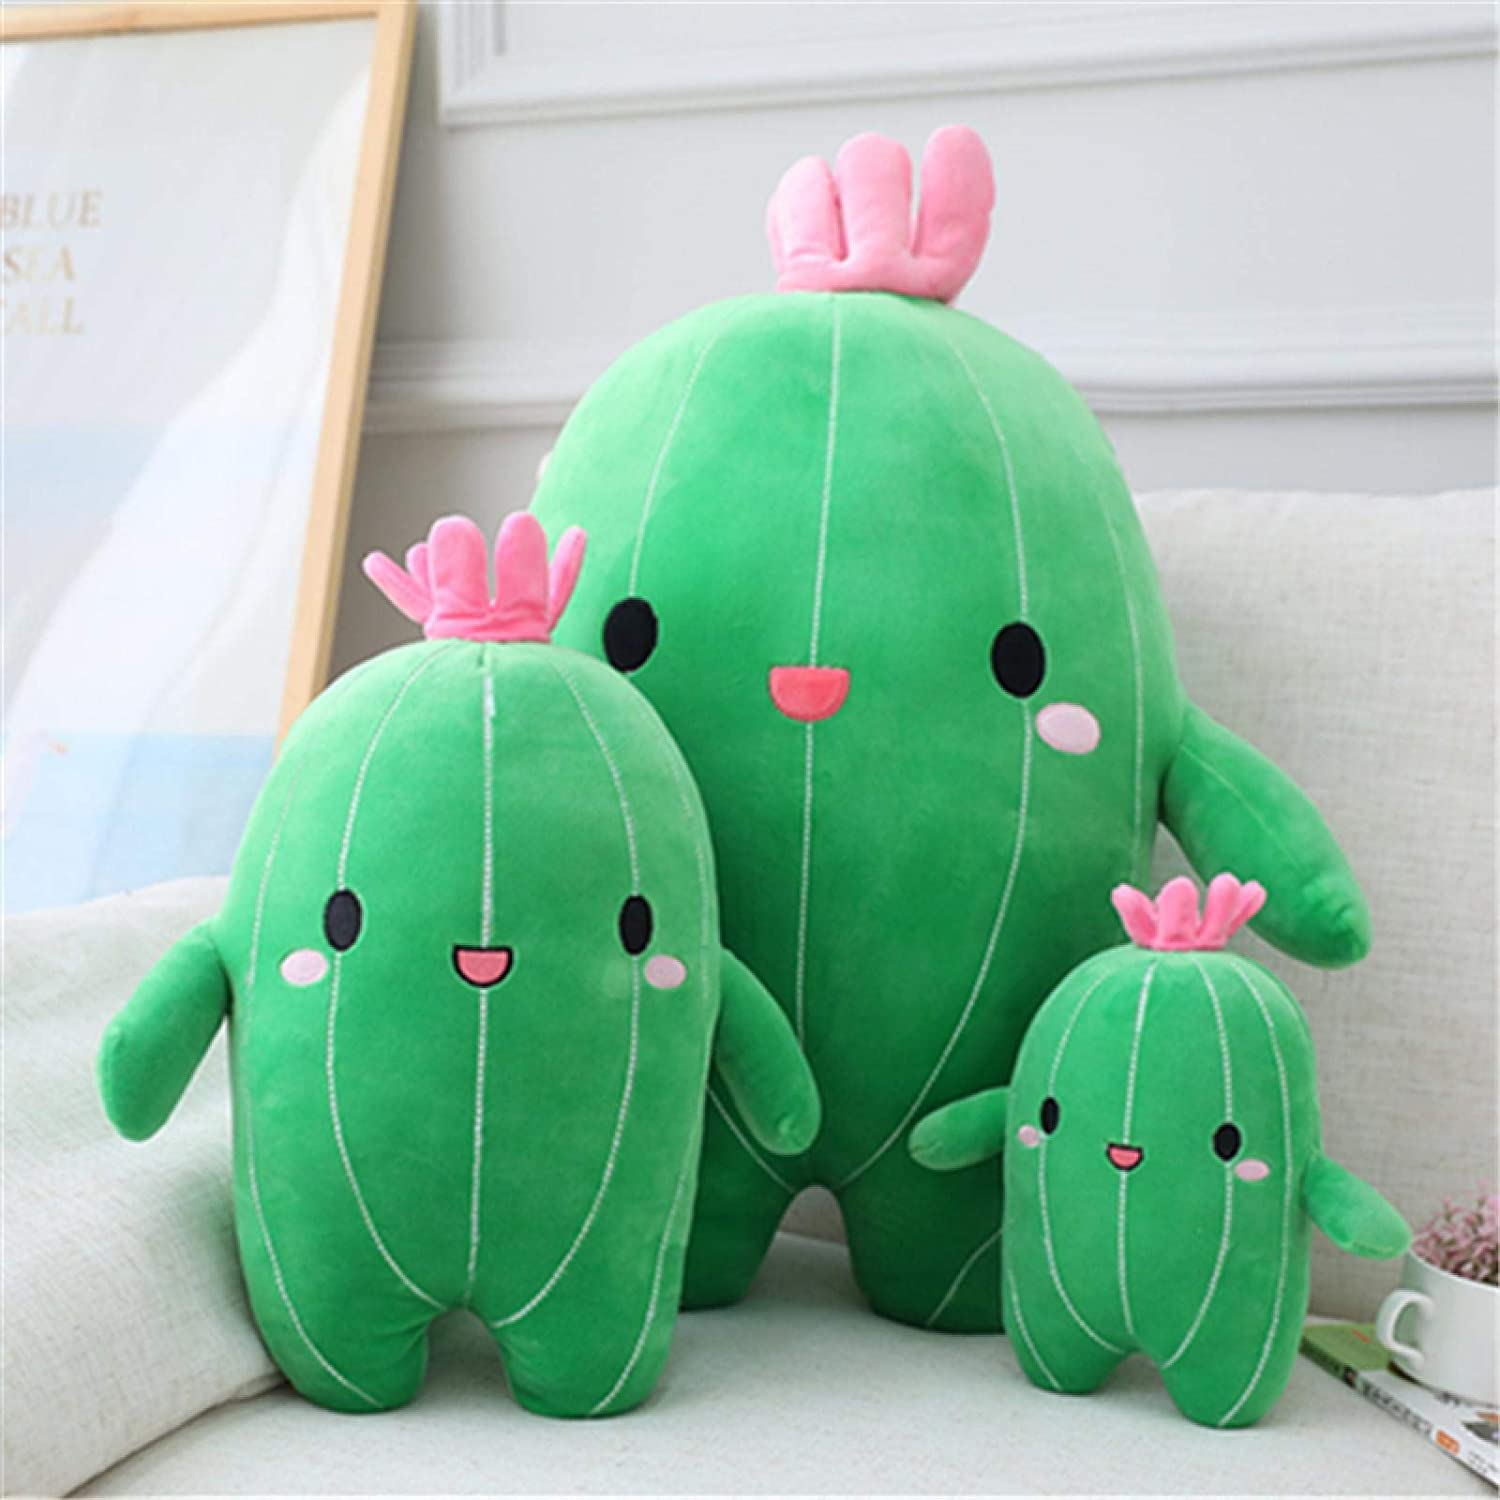 JKLW Toys, Plush Toys, Cute Cactus Dolls, Soft Plush Children's Pillows, Baby Birthday Gifts, 9-15 Inches (About 25/40 cm) 40cm